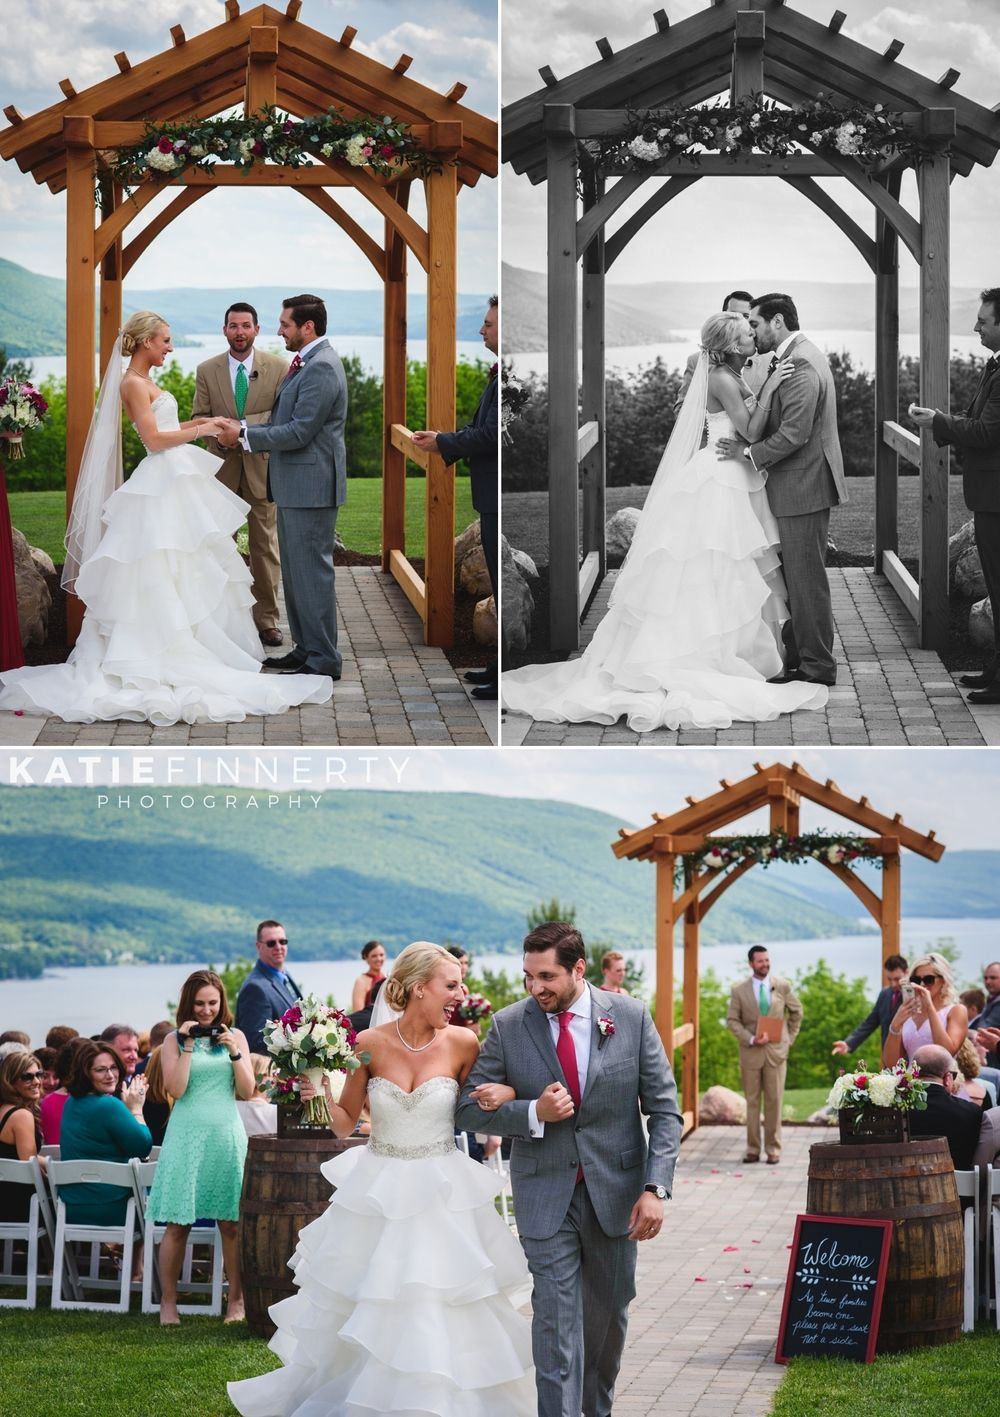 Bristol Harbour Resort Spring Wedding Ceremony Overlooking Canandaigua Lake Ny Photos By Katie Finnerty